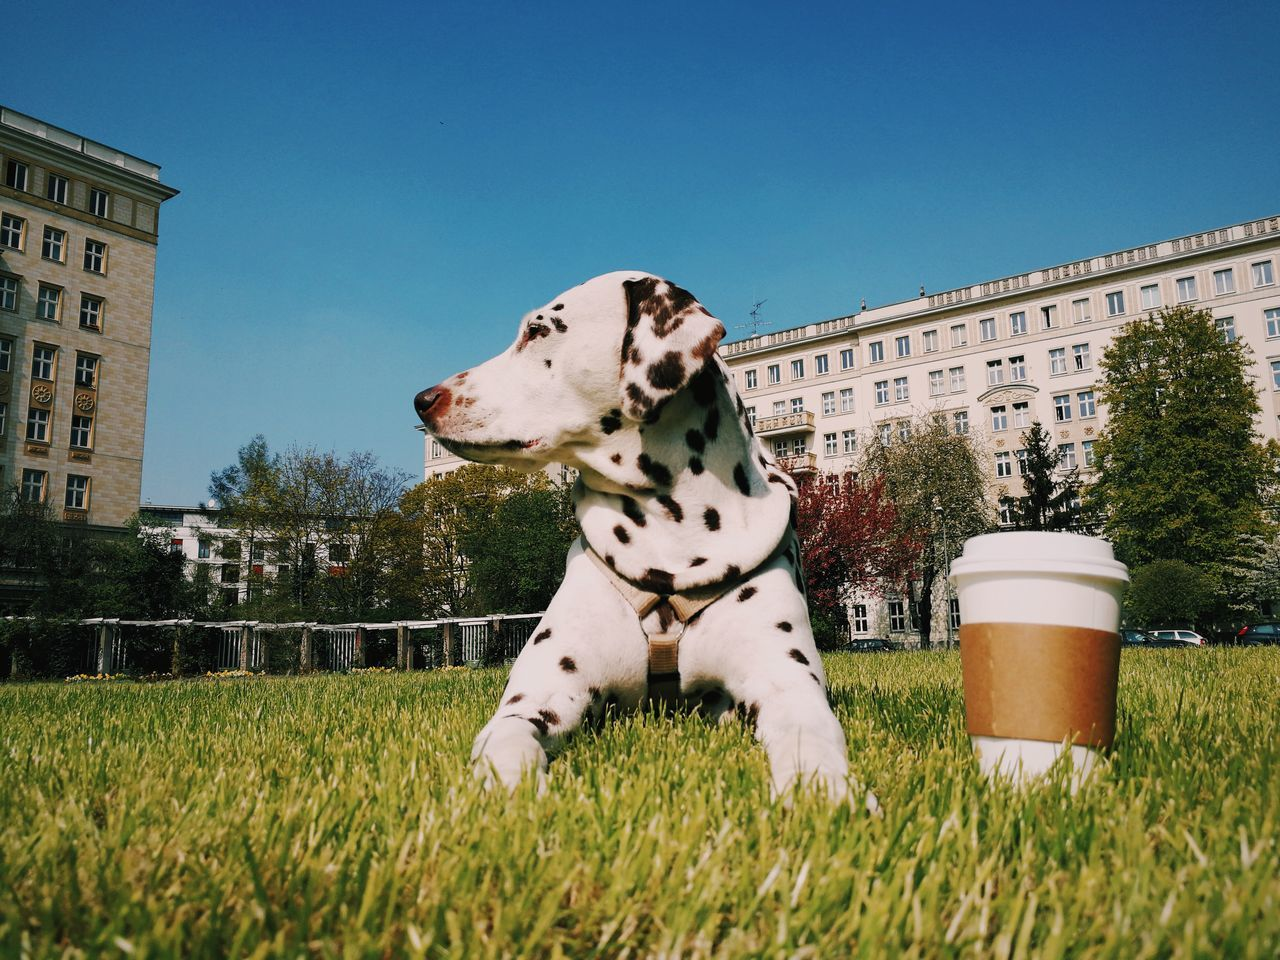 dalmatian dog, pets, domestic animals, one animal, animal themes, grass, dog, mammal, building exterior, architecture, day, outdoors, built structure, nature, no people, clear sky, sky